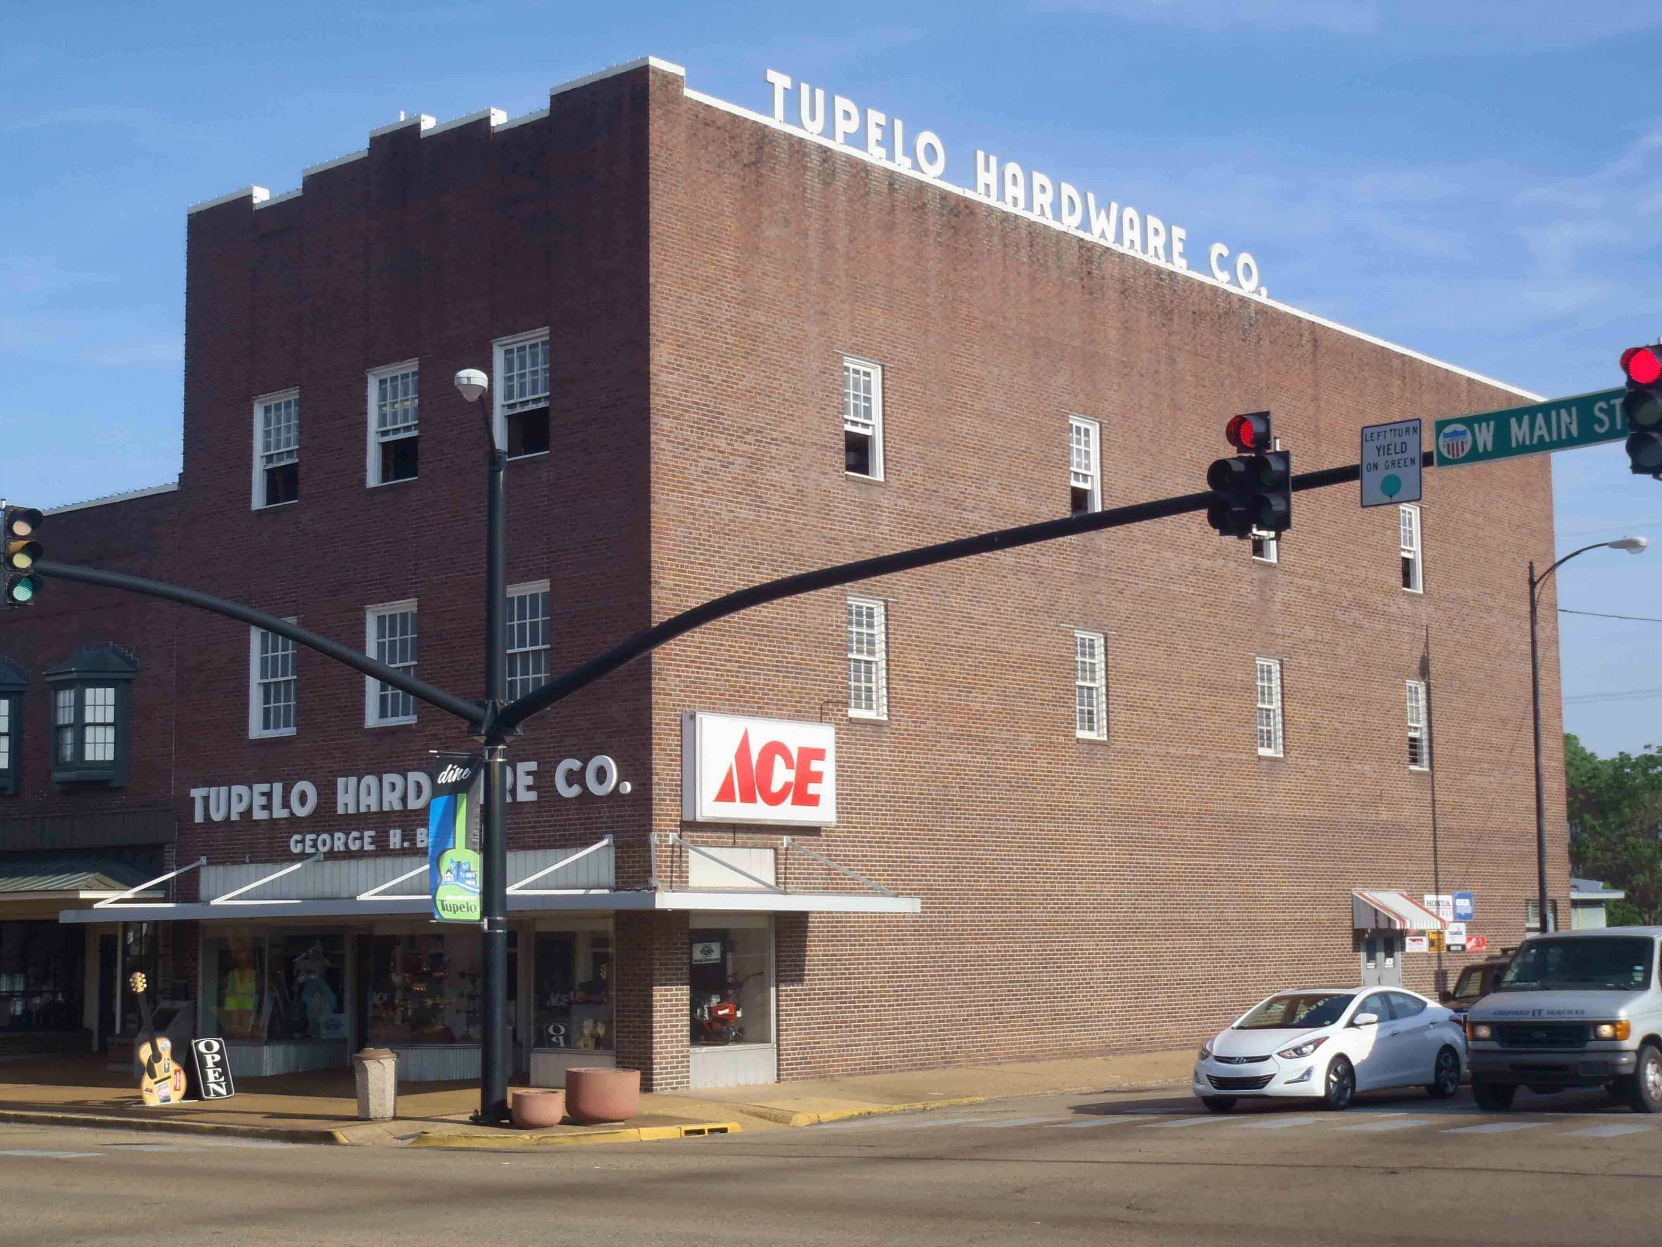 Tupelo Hardware Company, W. Main Street, Tupelo, Mississippi, where Elvis Presley bought his first guitar. (photo by Mississippi Blues Travellers)